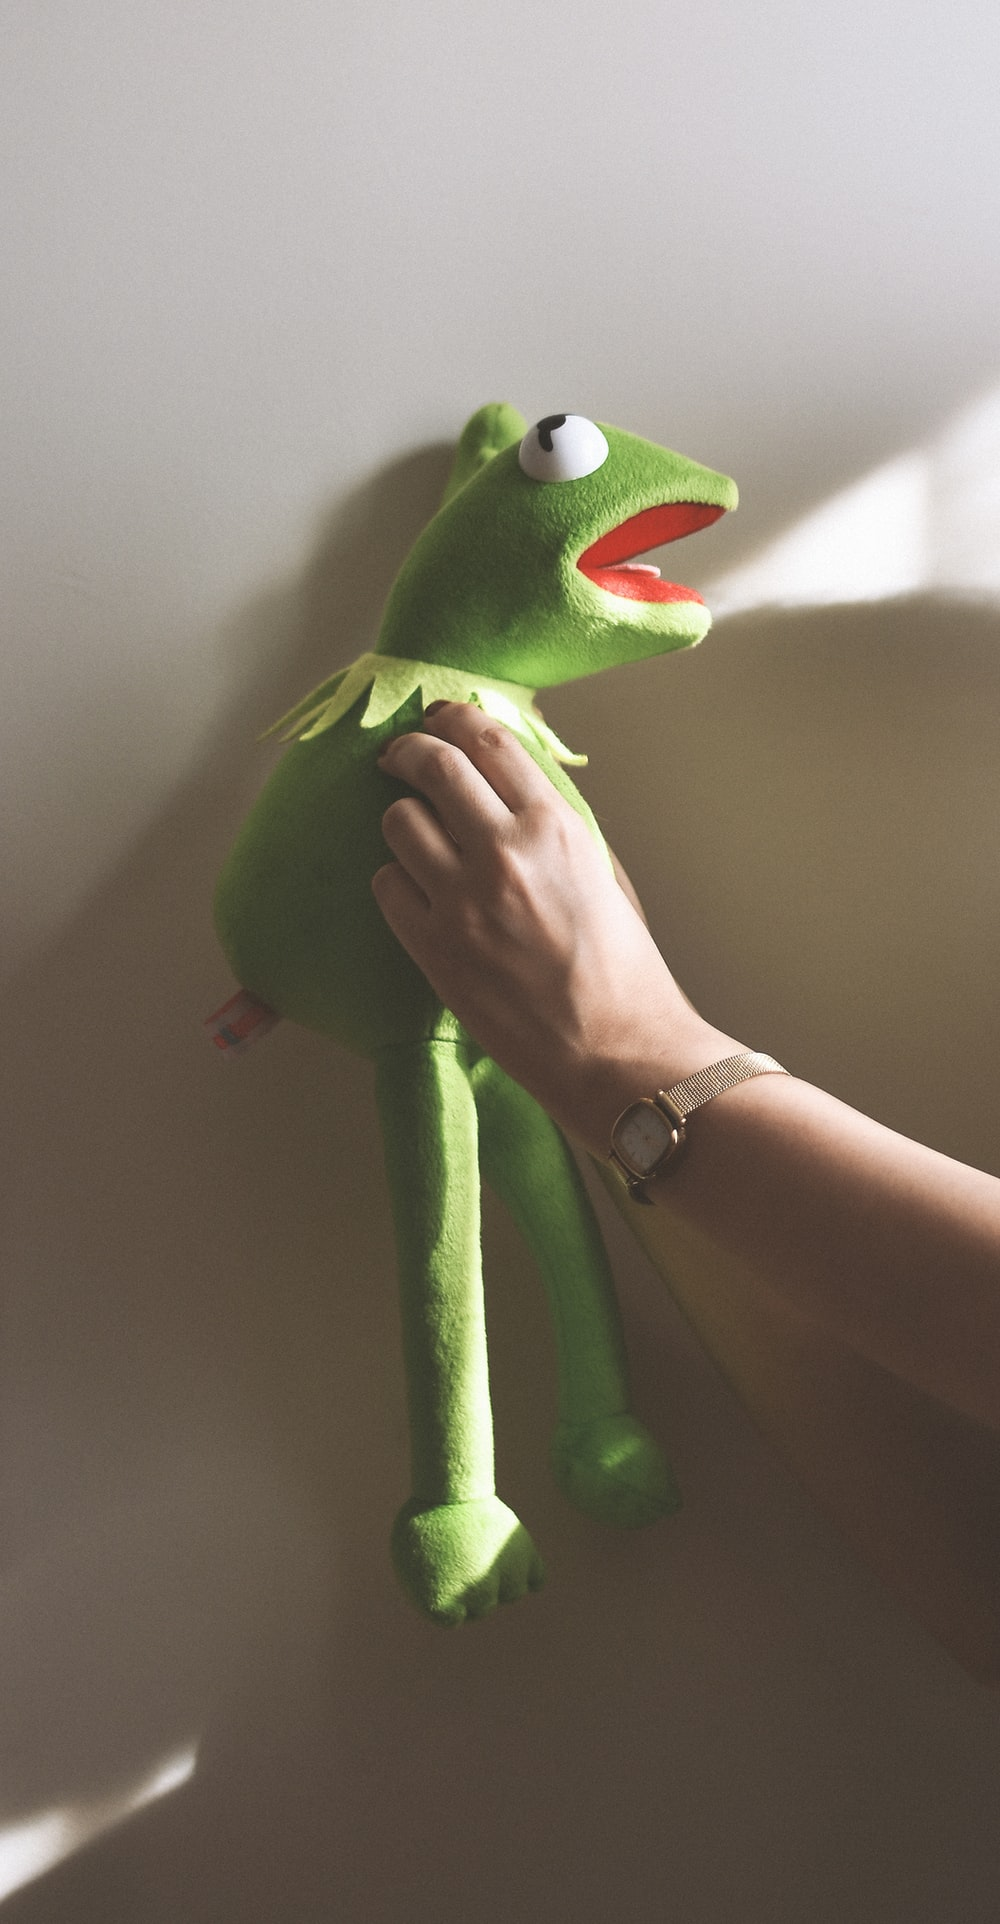 green frog plush toy on persons hand